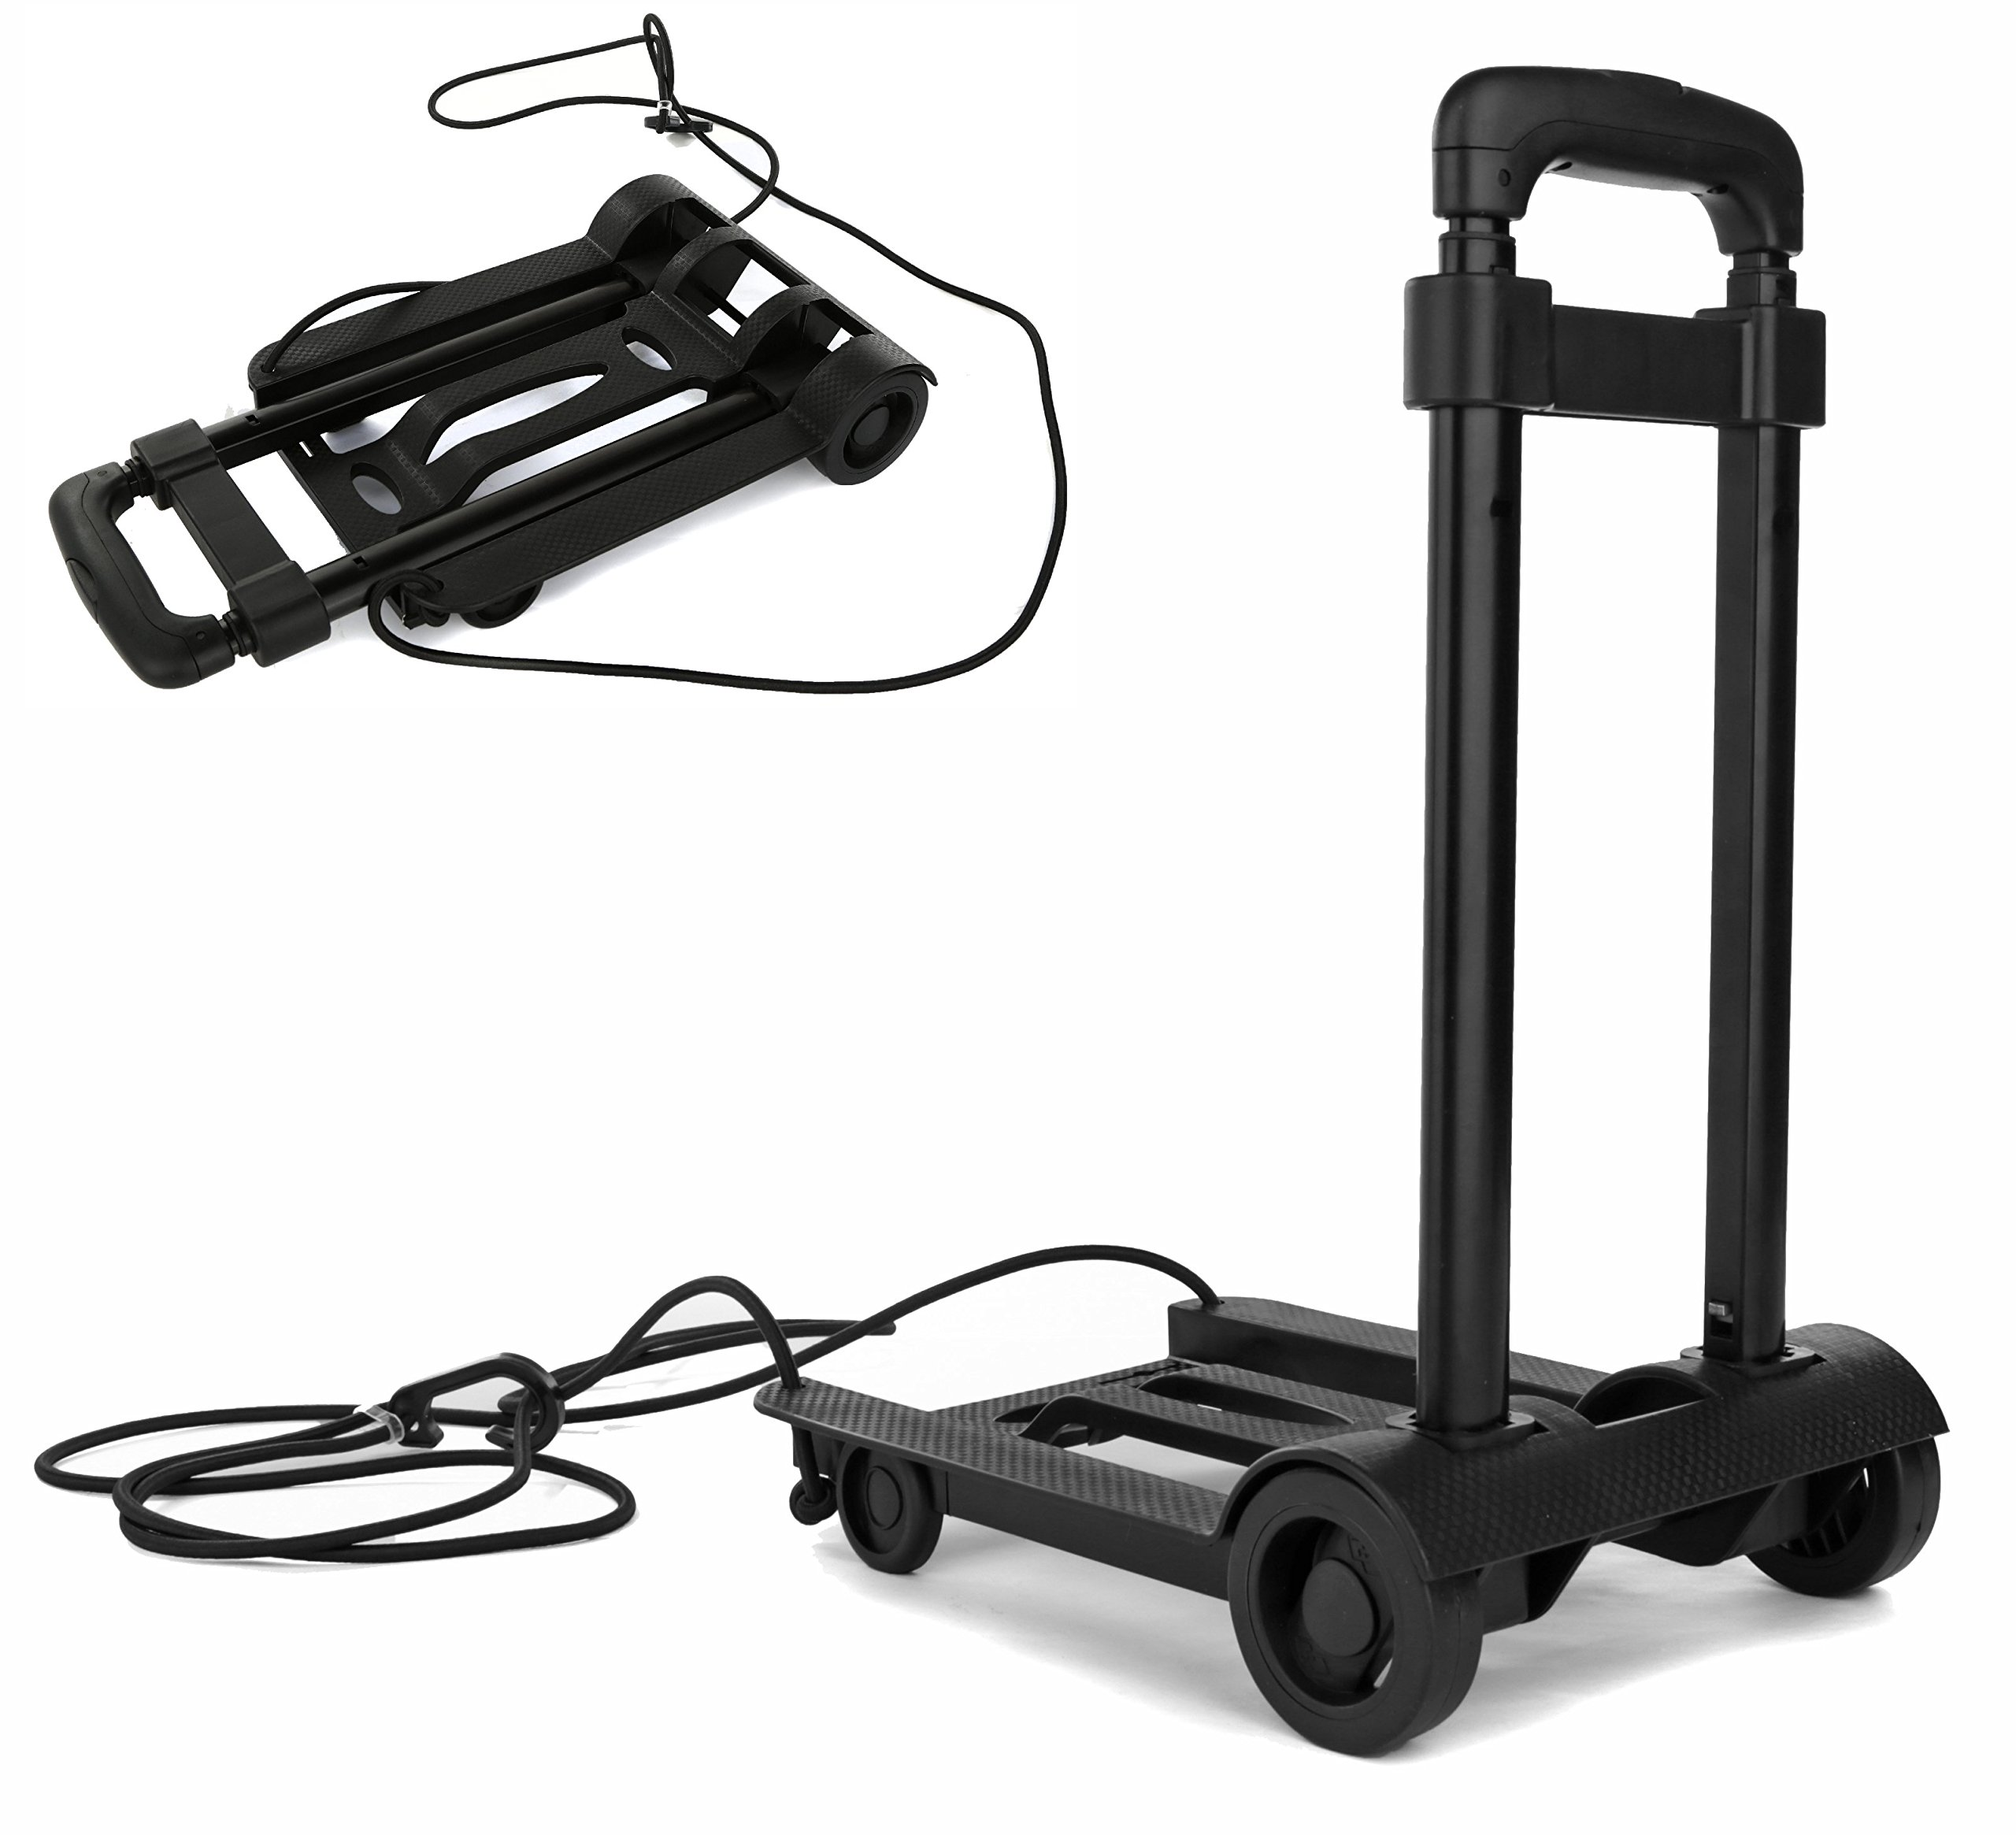 Folding Compact Lightweight Premium Durable Luggage Cart - Travel Trolley - Multi Use …